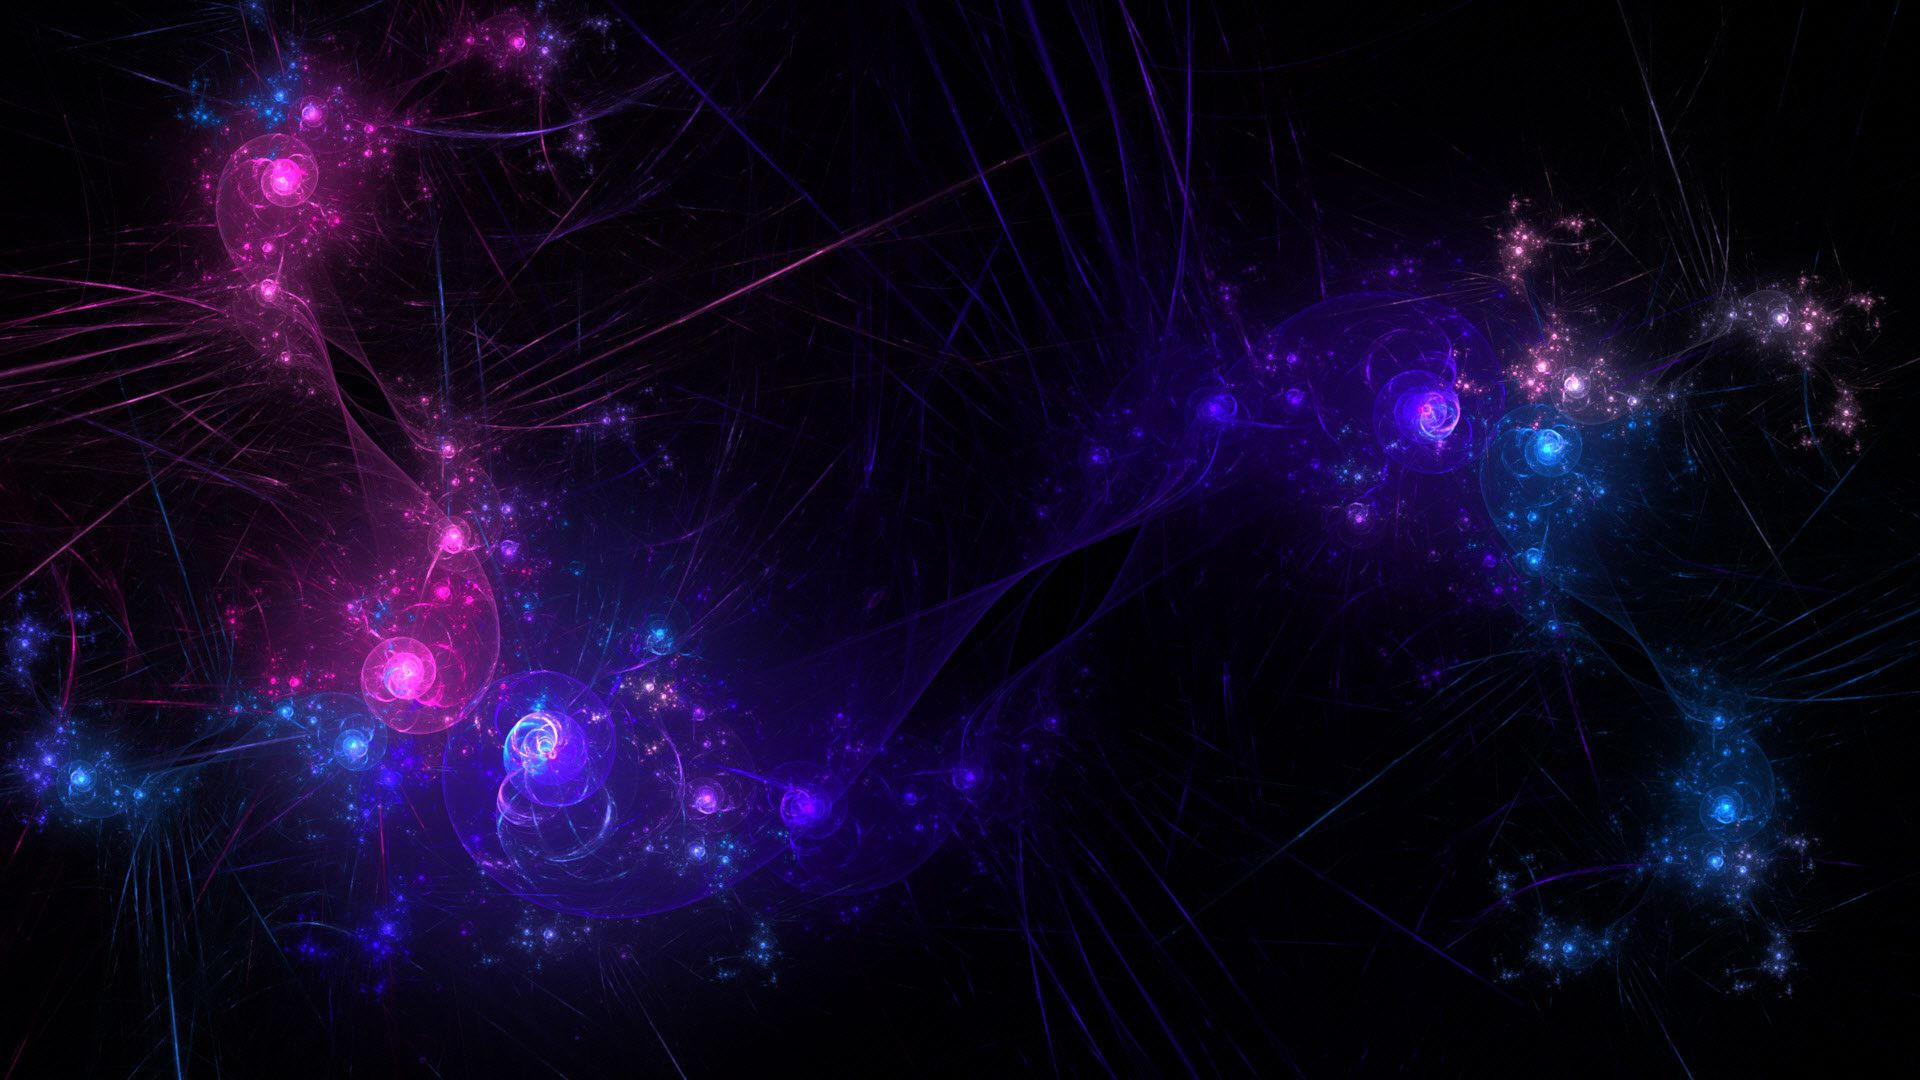 Purple Gaming Wallpapers - Top Free Purple Gaming Backgrounds